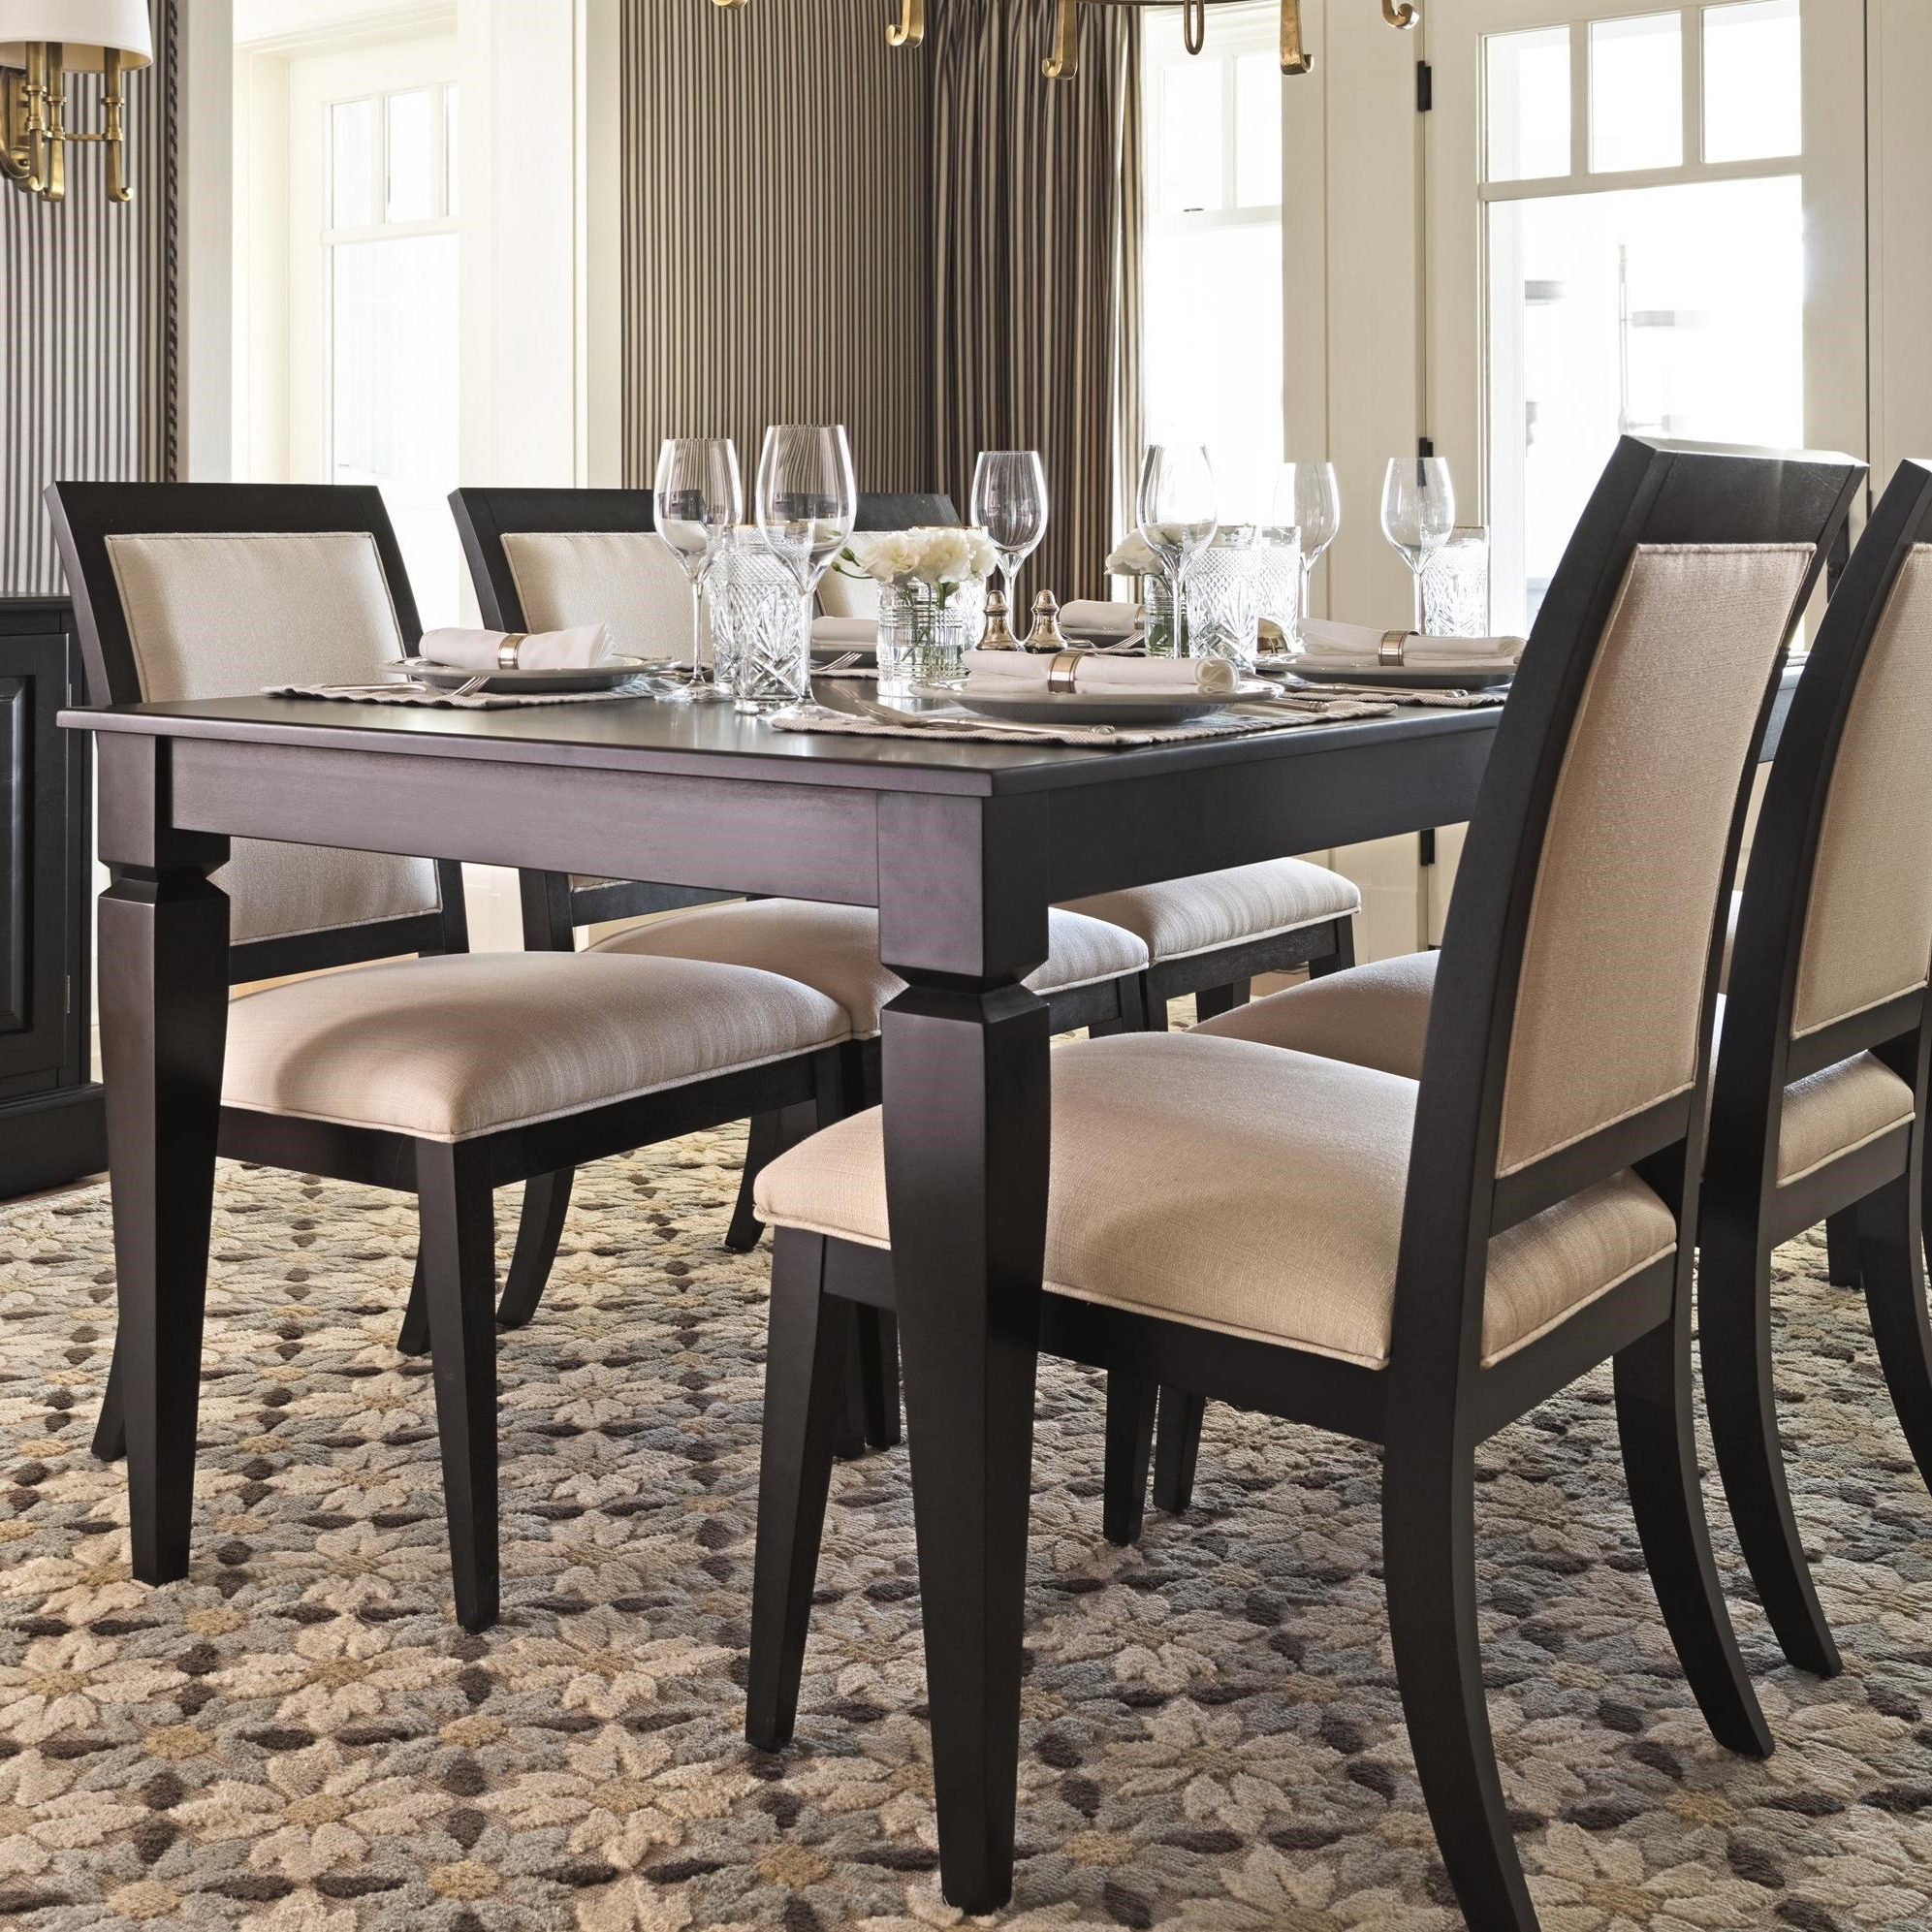 Recent Canadel Custom Dining Customizable Rectangular Dining Table Regarding Transitional 6 Seating Casual Dining Tables (View 18 of 30)